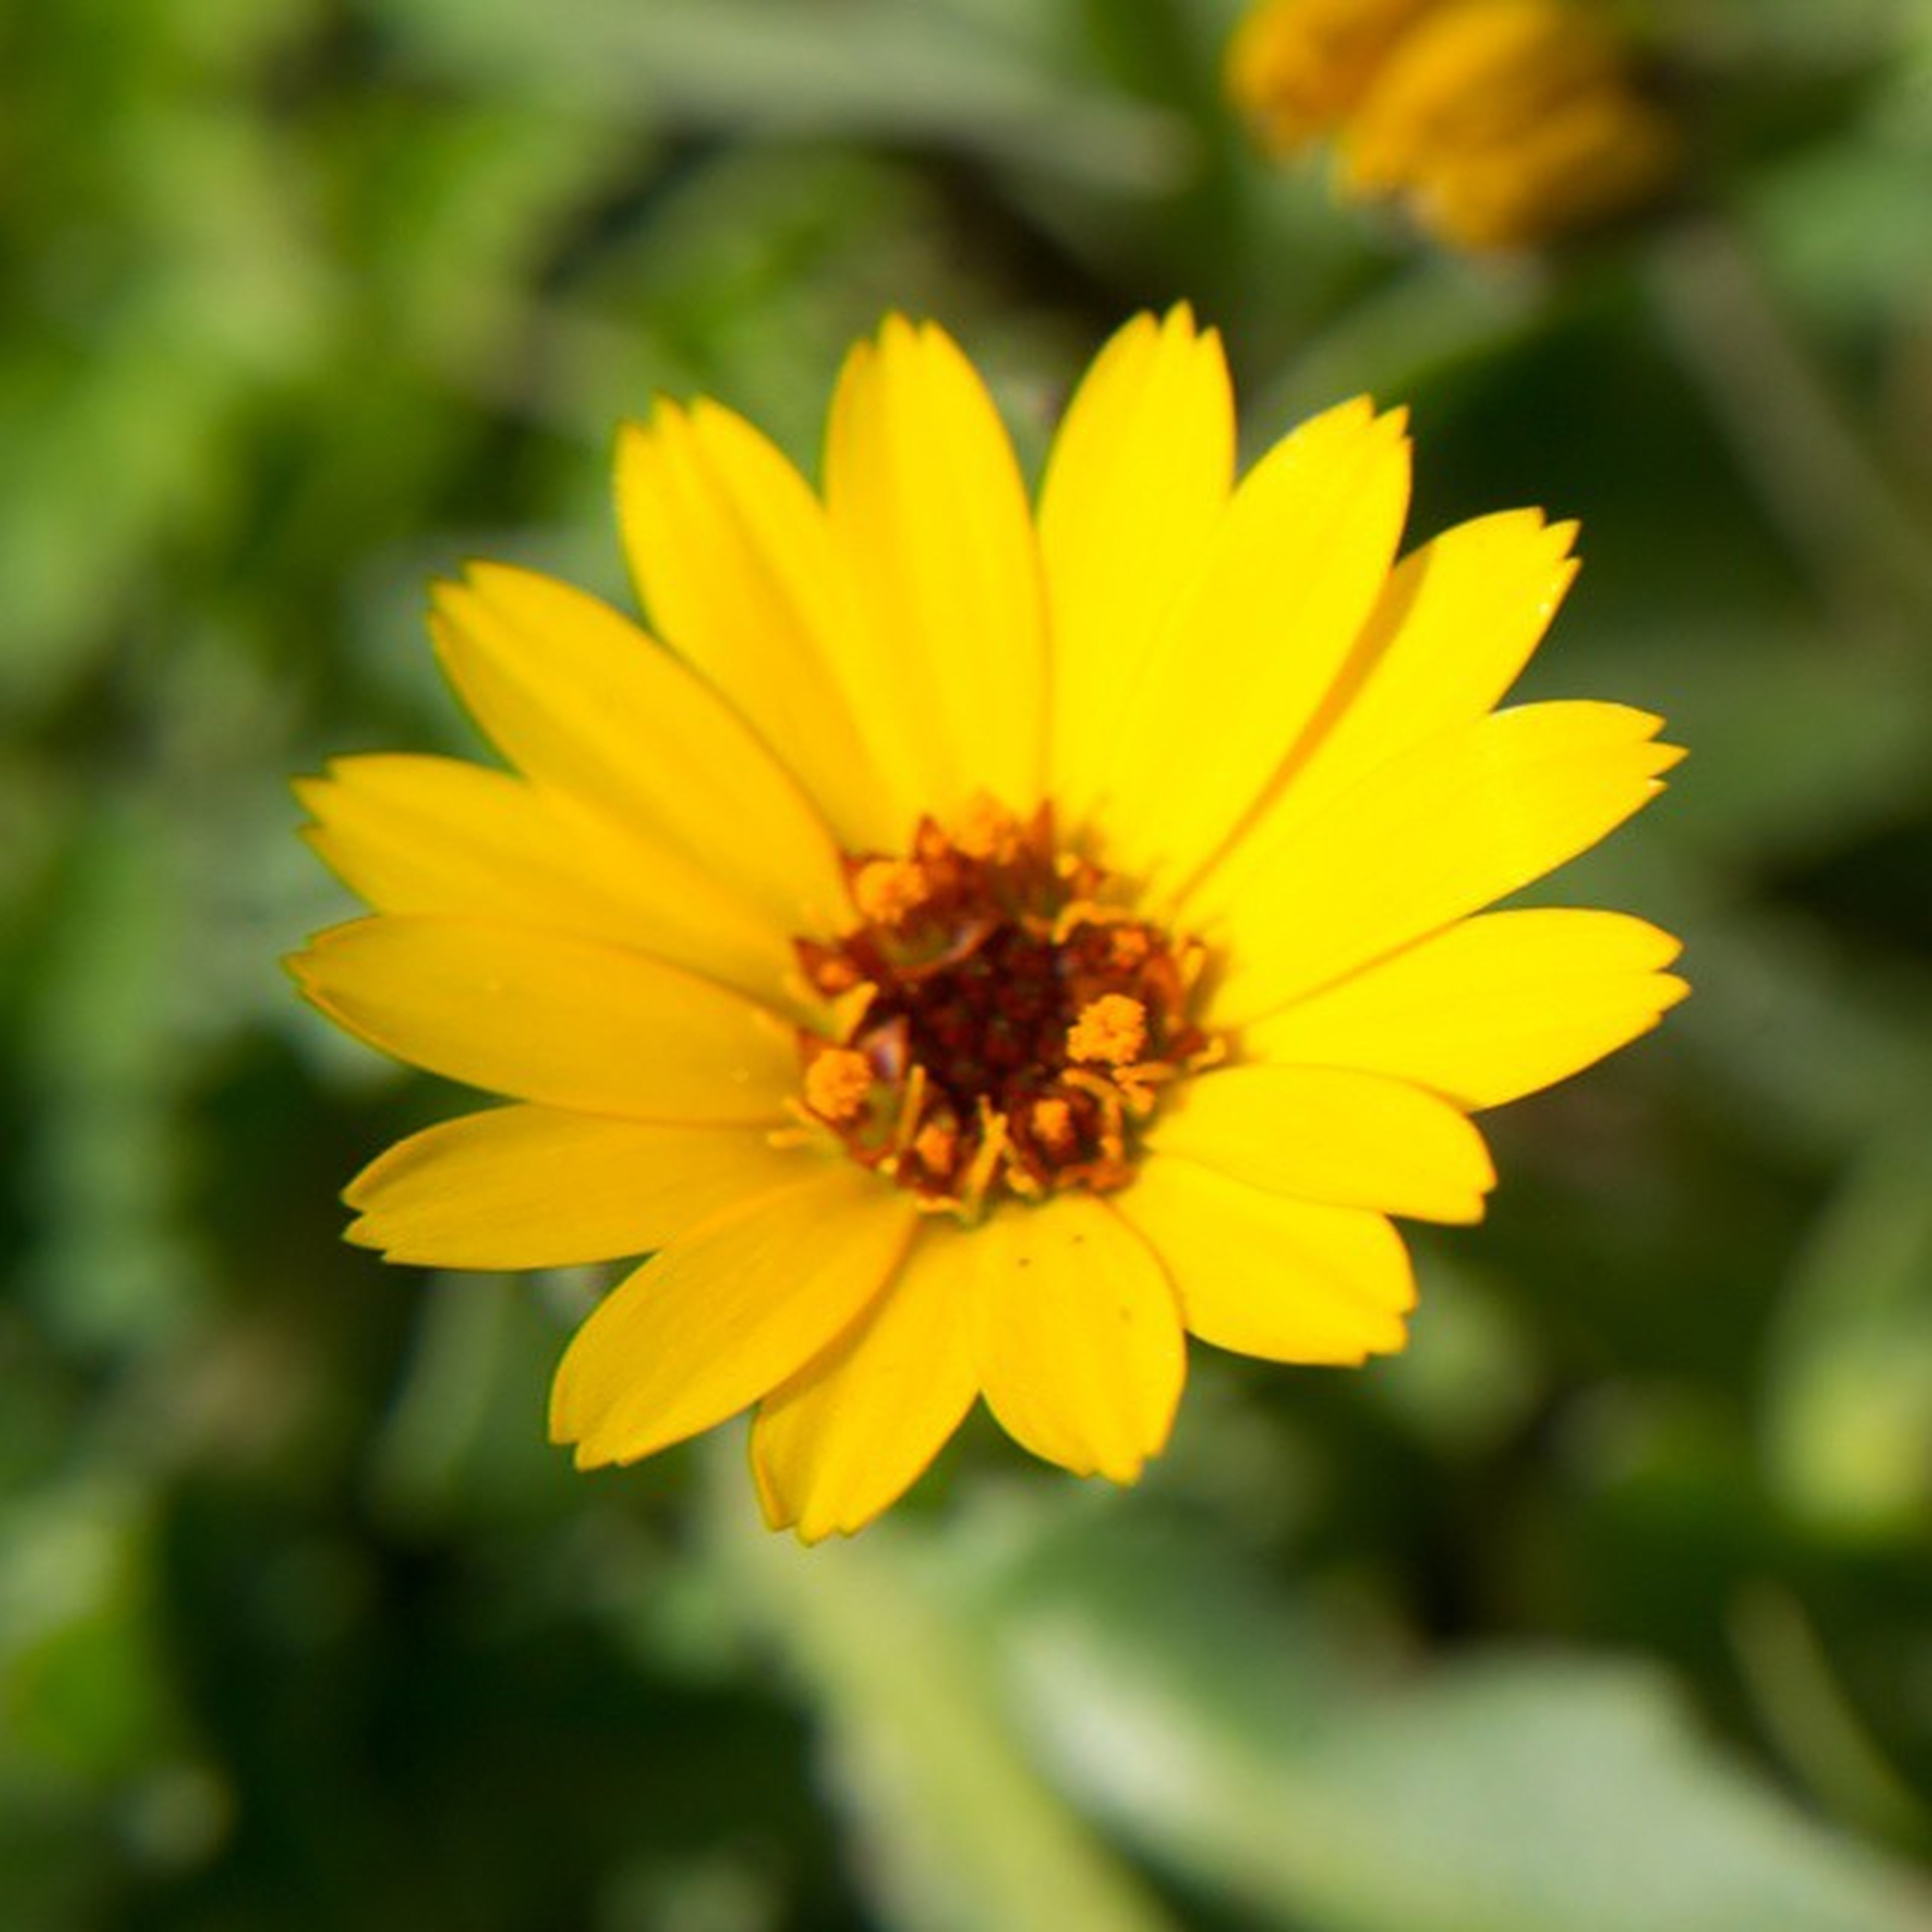 flower, petal, yellow, freshness, flower head, fragility, focus on foreground, close-up, growth, beauty in nature, single flower, pollen, blooming, nature, plant, in bloom, park - man made space, outdoors, day, no people